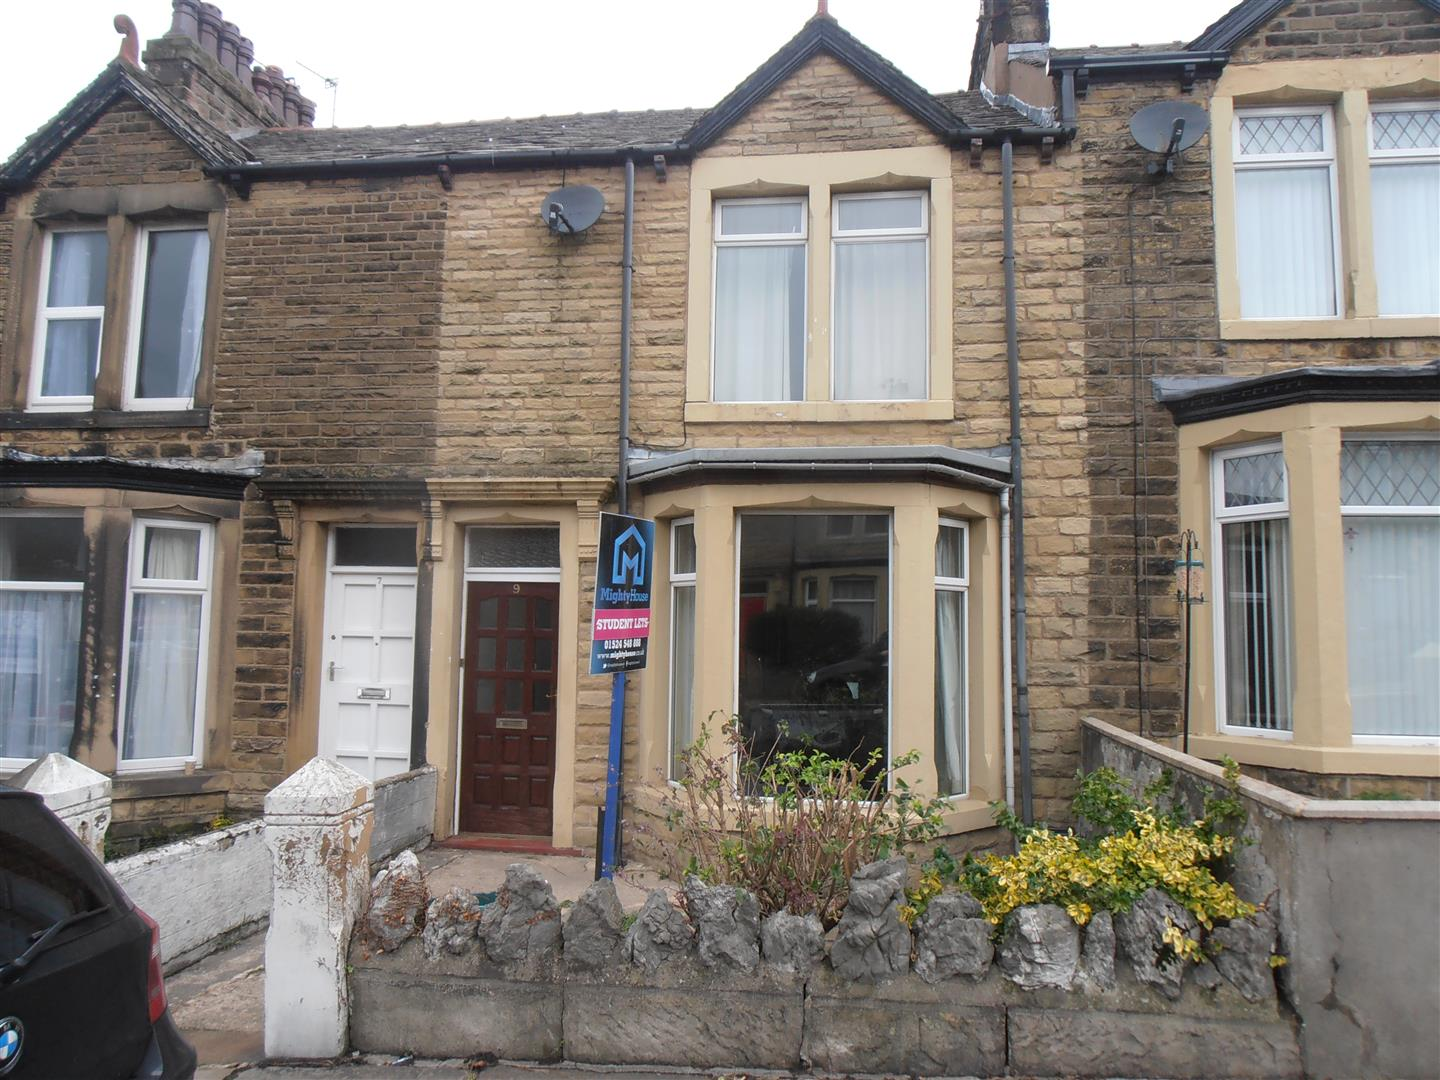 9 Coulston Road, Lancaster, LA1 3AD